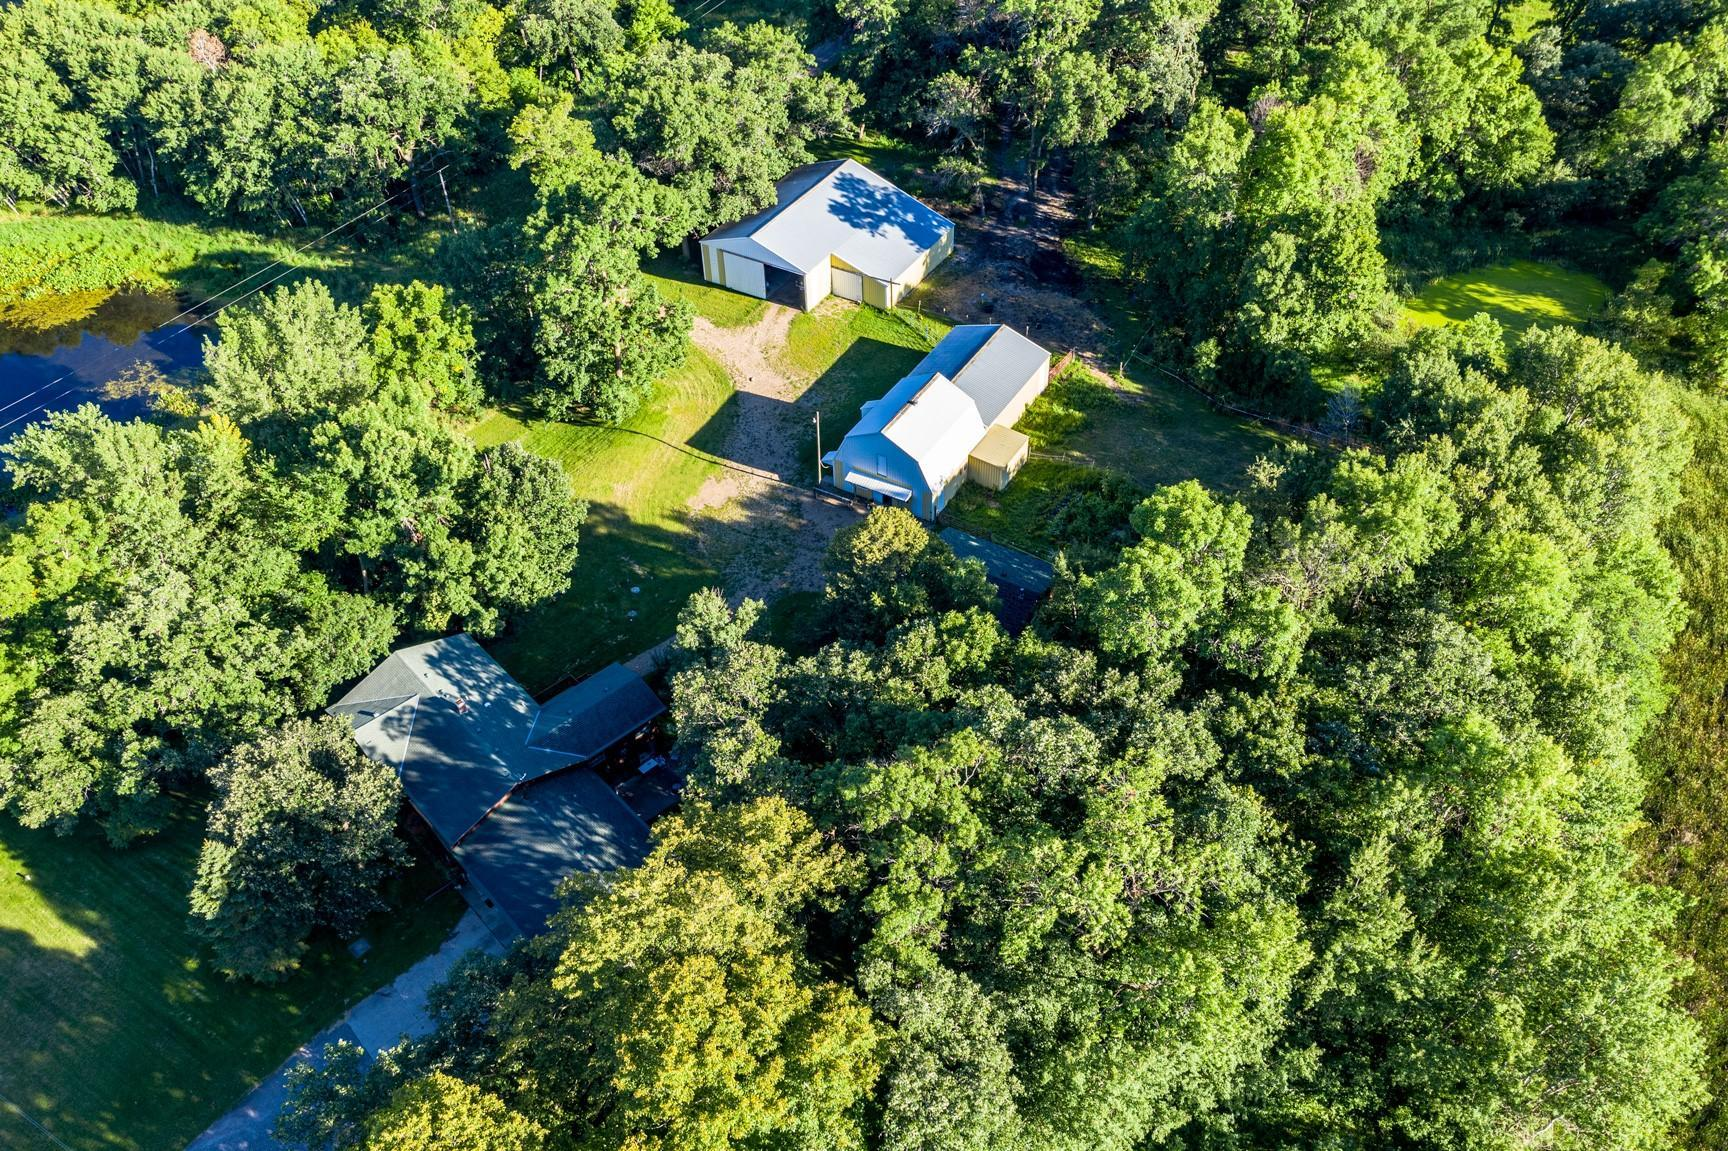 See supplement for complete details. Too much for print here. Hobby farm all set up for horses.  5-6 stalls in barn.  Approx. 8 acres tillable pasture, 2 wooded and 2 with buildings.  All pasture acres with electric fencing.  Many upgrades in home.  Barn 36x30 with attached 40x30 pole building.  Extra 60x40 bldg with 40x20 lean.  A must see for any horse lover!